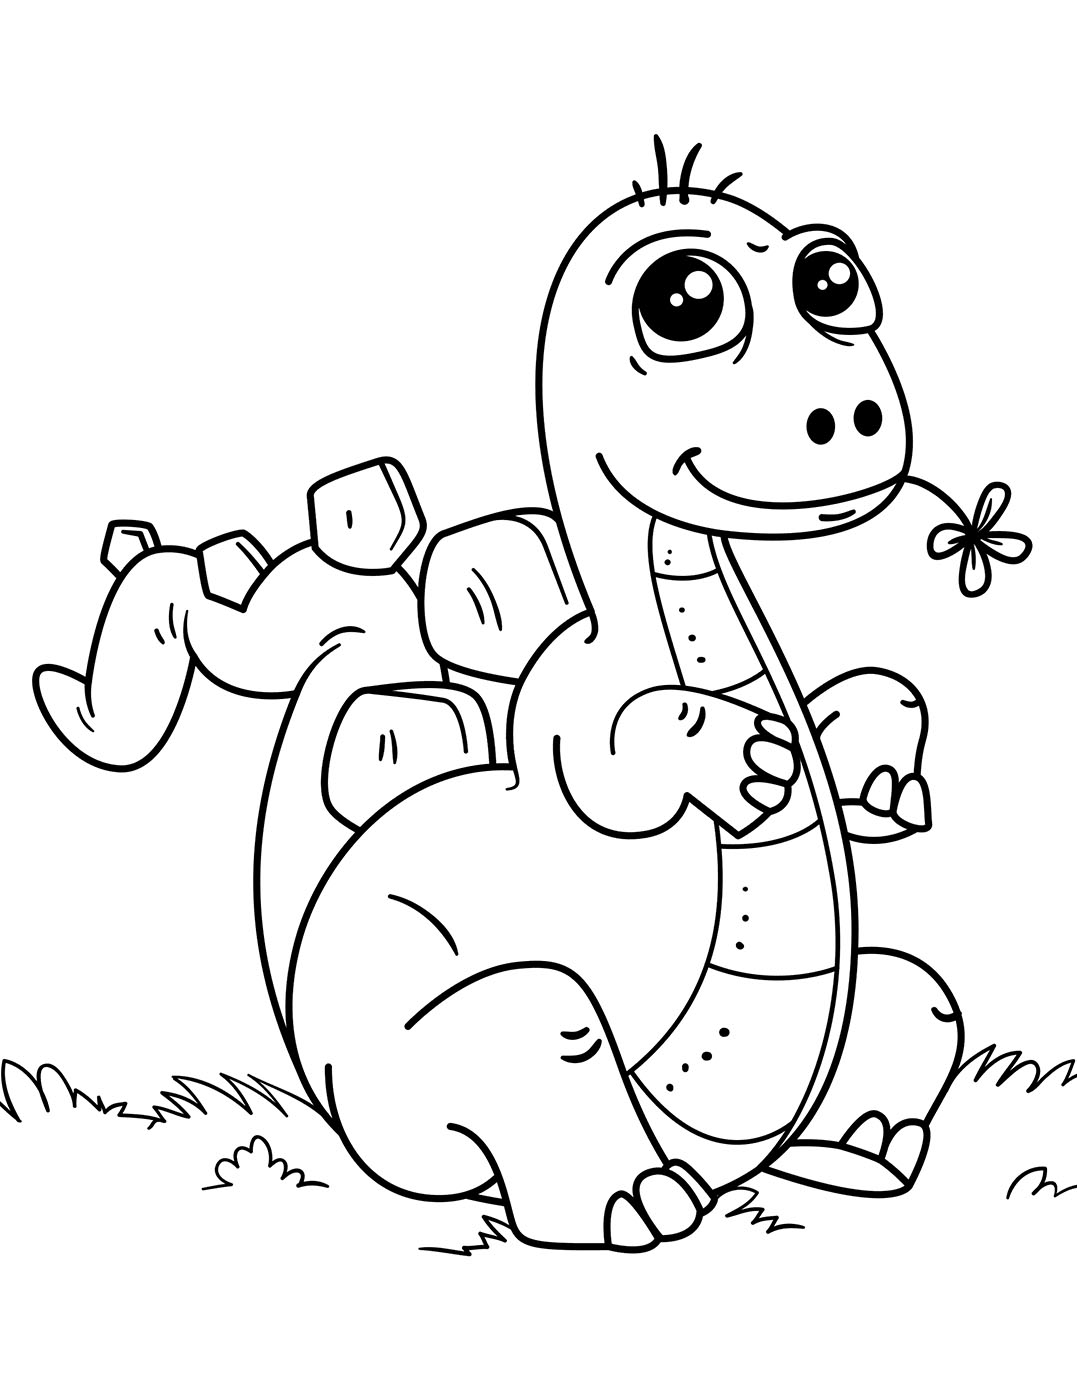 dinosaurs color pages dinosaur coloring pages 2018 dr odd color dinosaurs pages